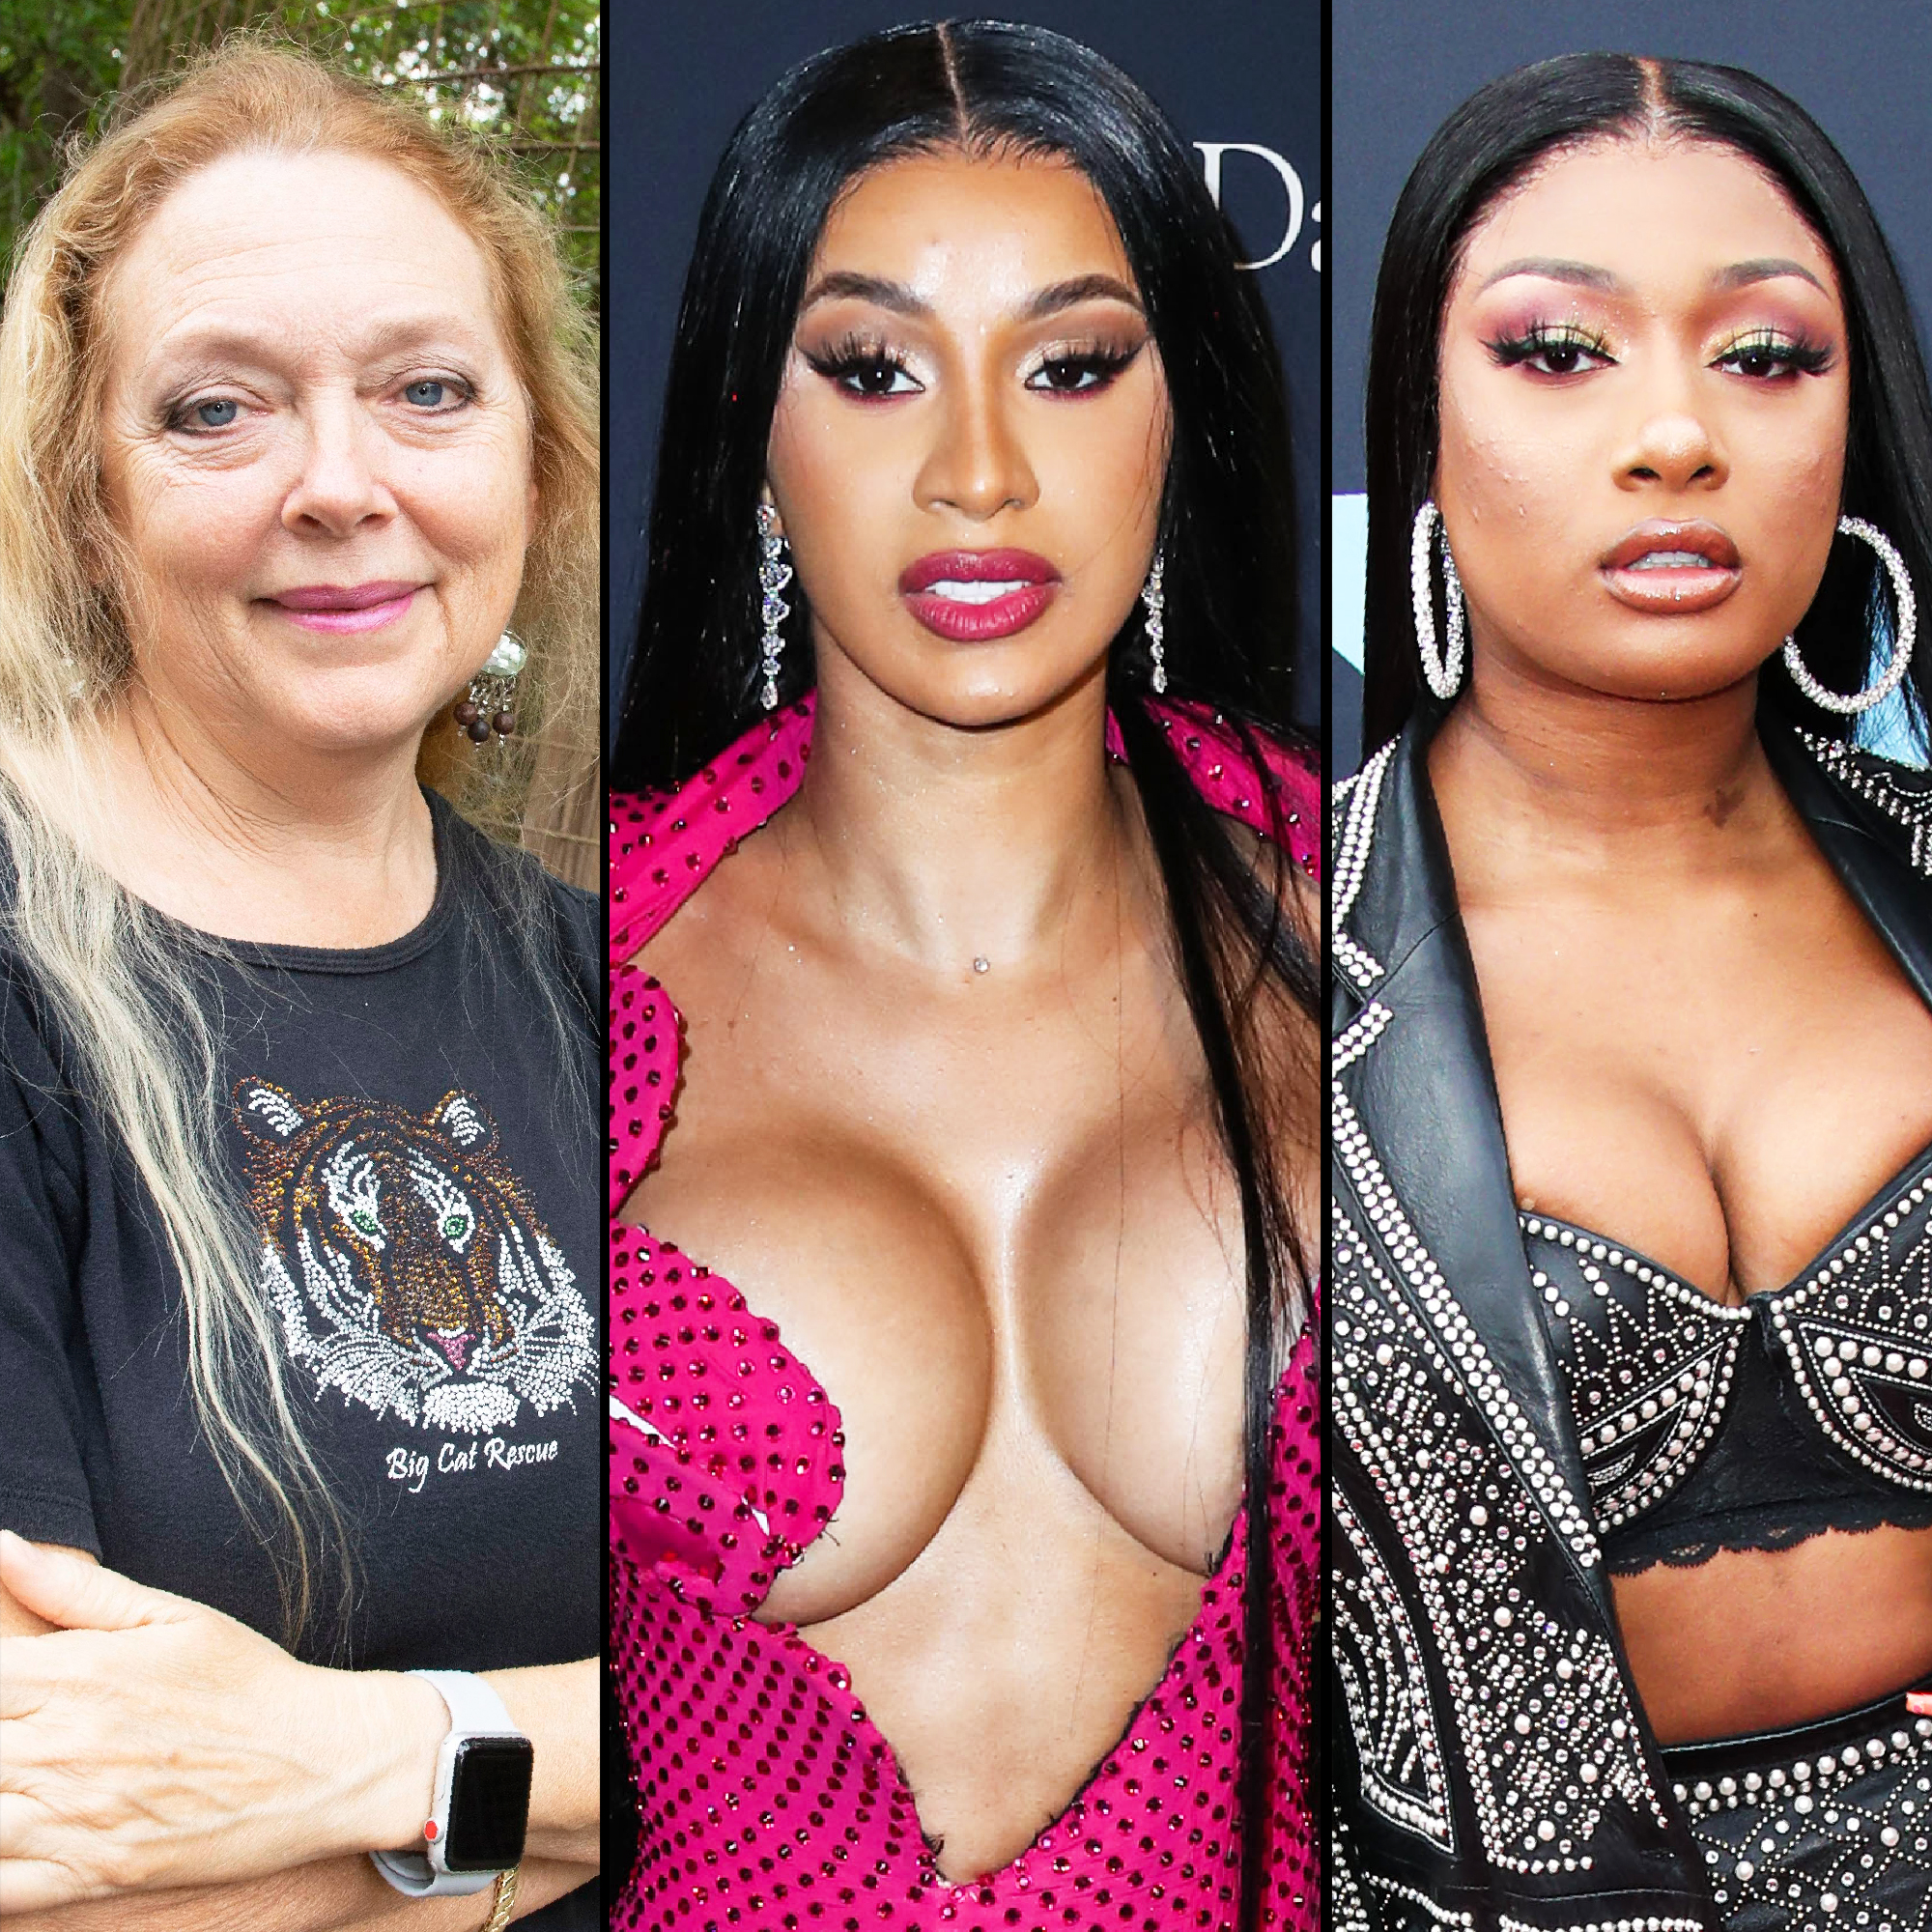 Carole Baskin Slams Cardi B Megan Thee Stallion For Big Cats In Video